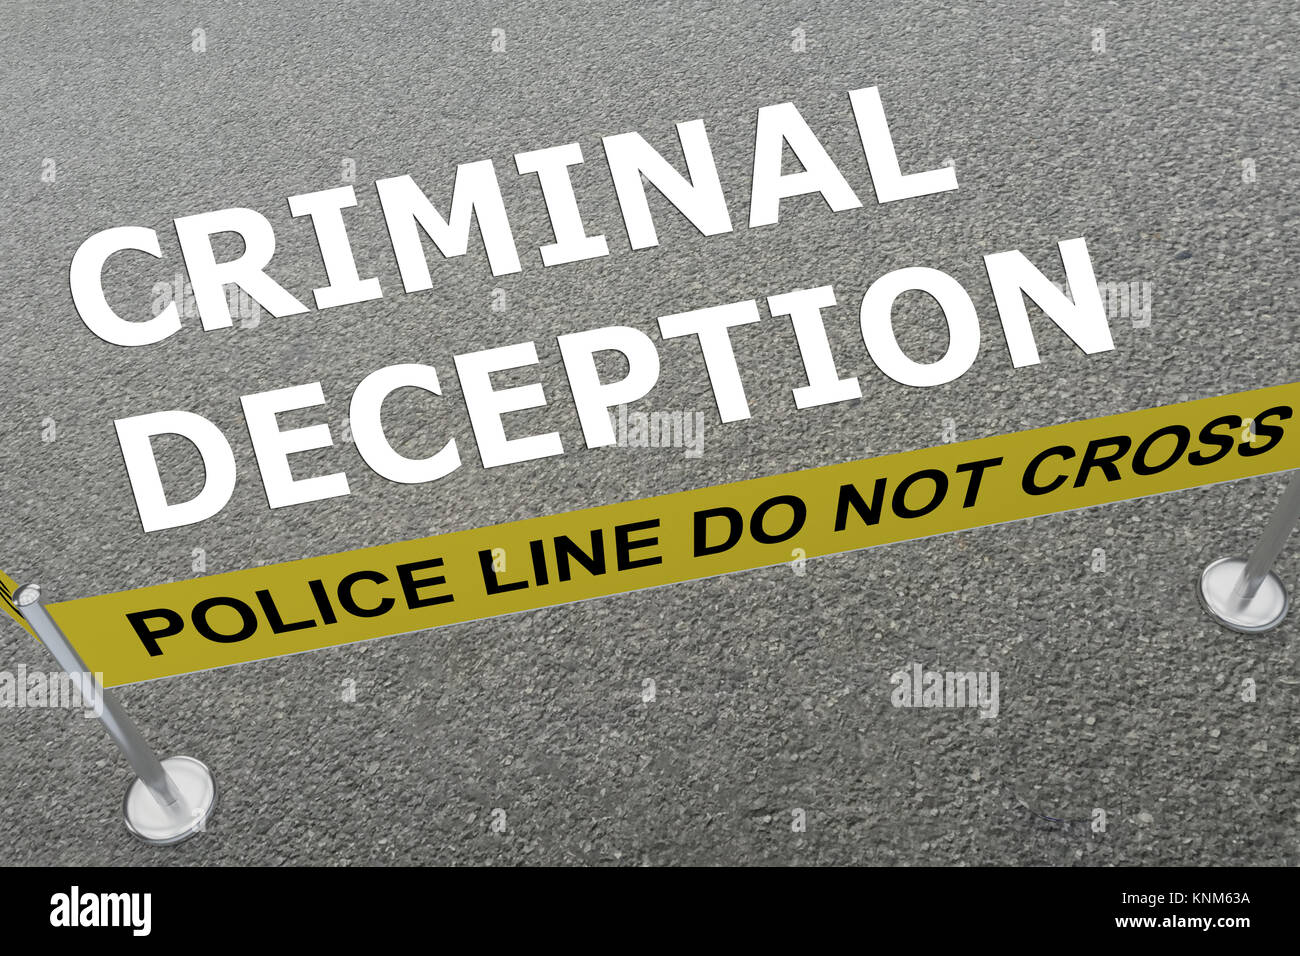 3D illustration of 'CRIMINAL DECEPTION' title on the ground in a police arena - Stock Image